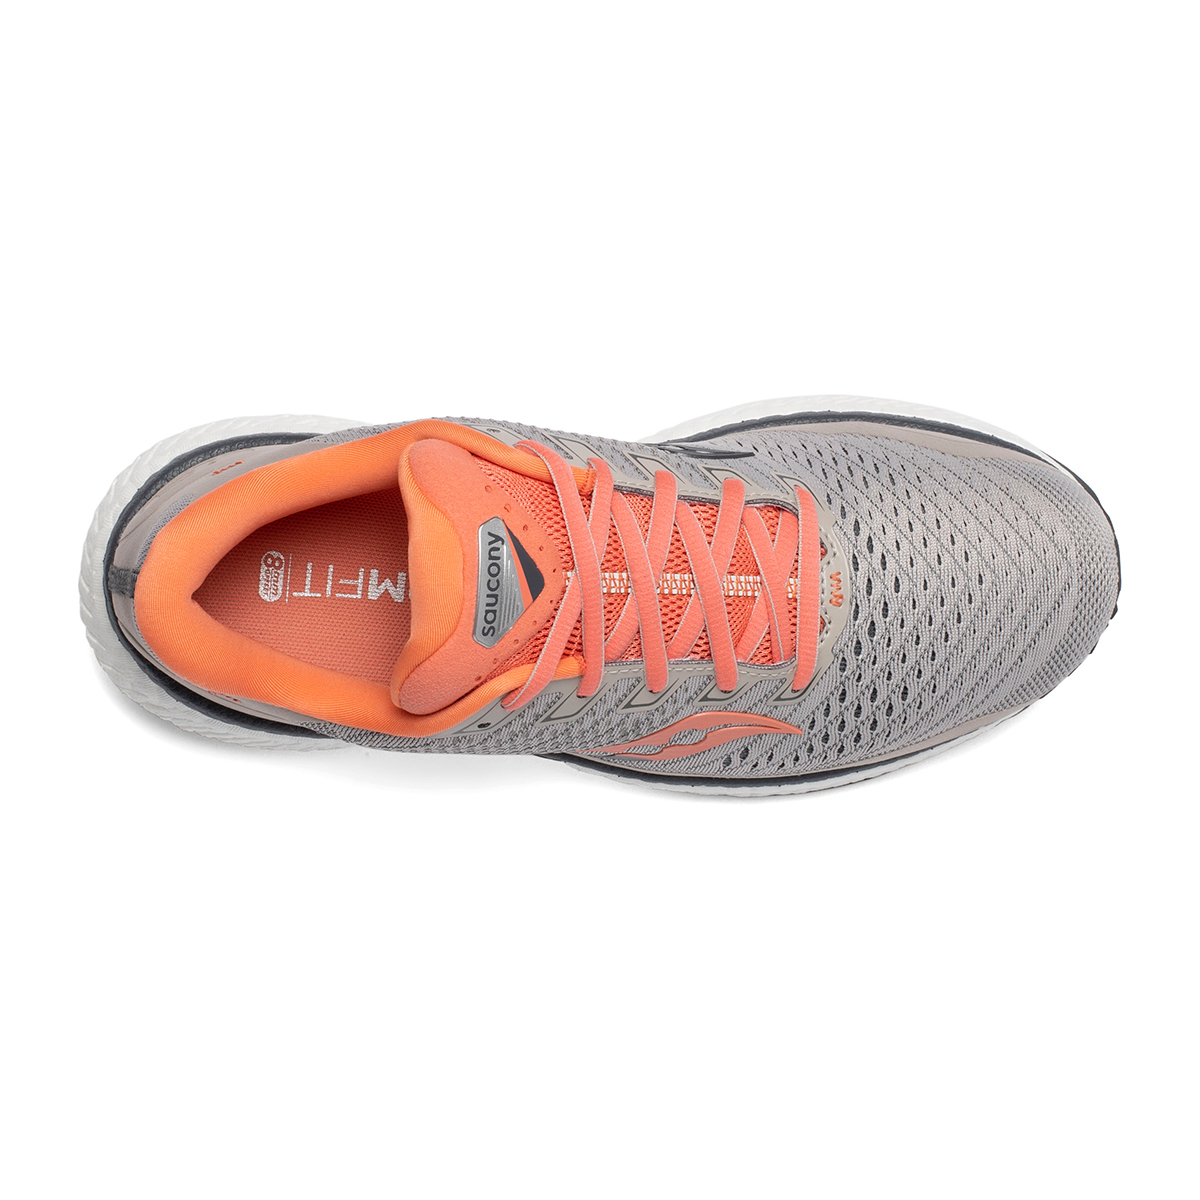 Women's Saucony Triumph 18 Running Shoe - Color: Moonrock/Coral - Size: 5 - Width: Regular, Moonrock/Coral, large, image 4